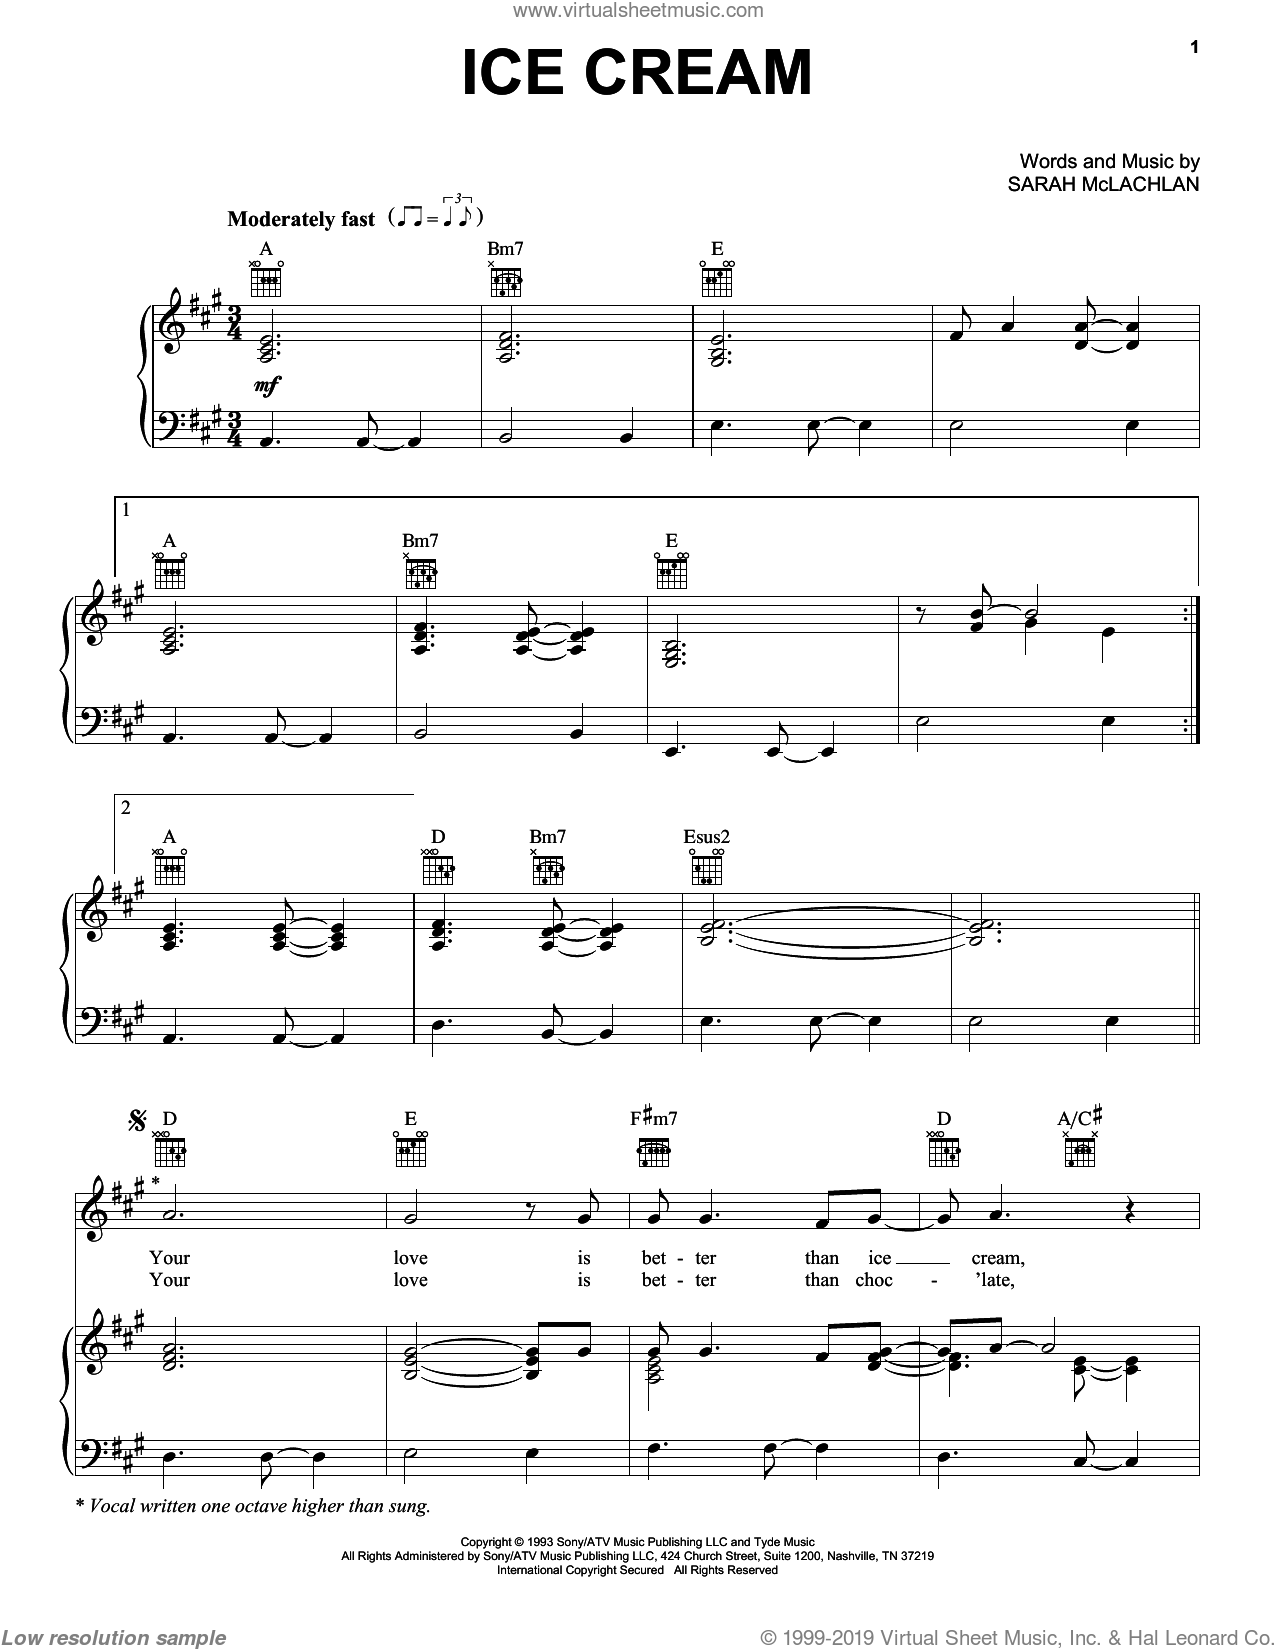 Ice Cream sheet music for voice, piano or guitar by Sarah McLachlan, intermediate skill level